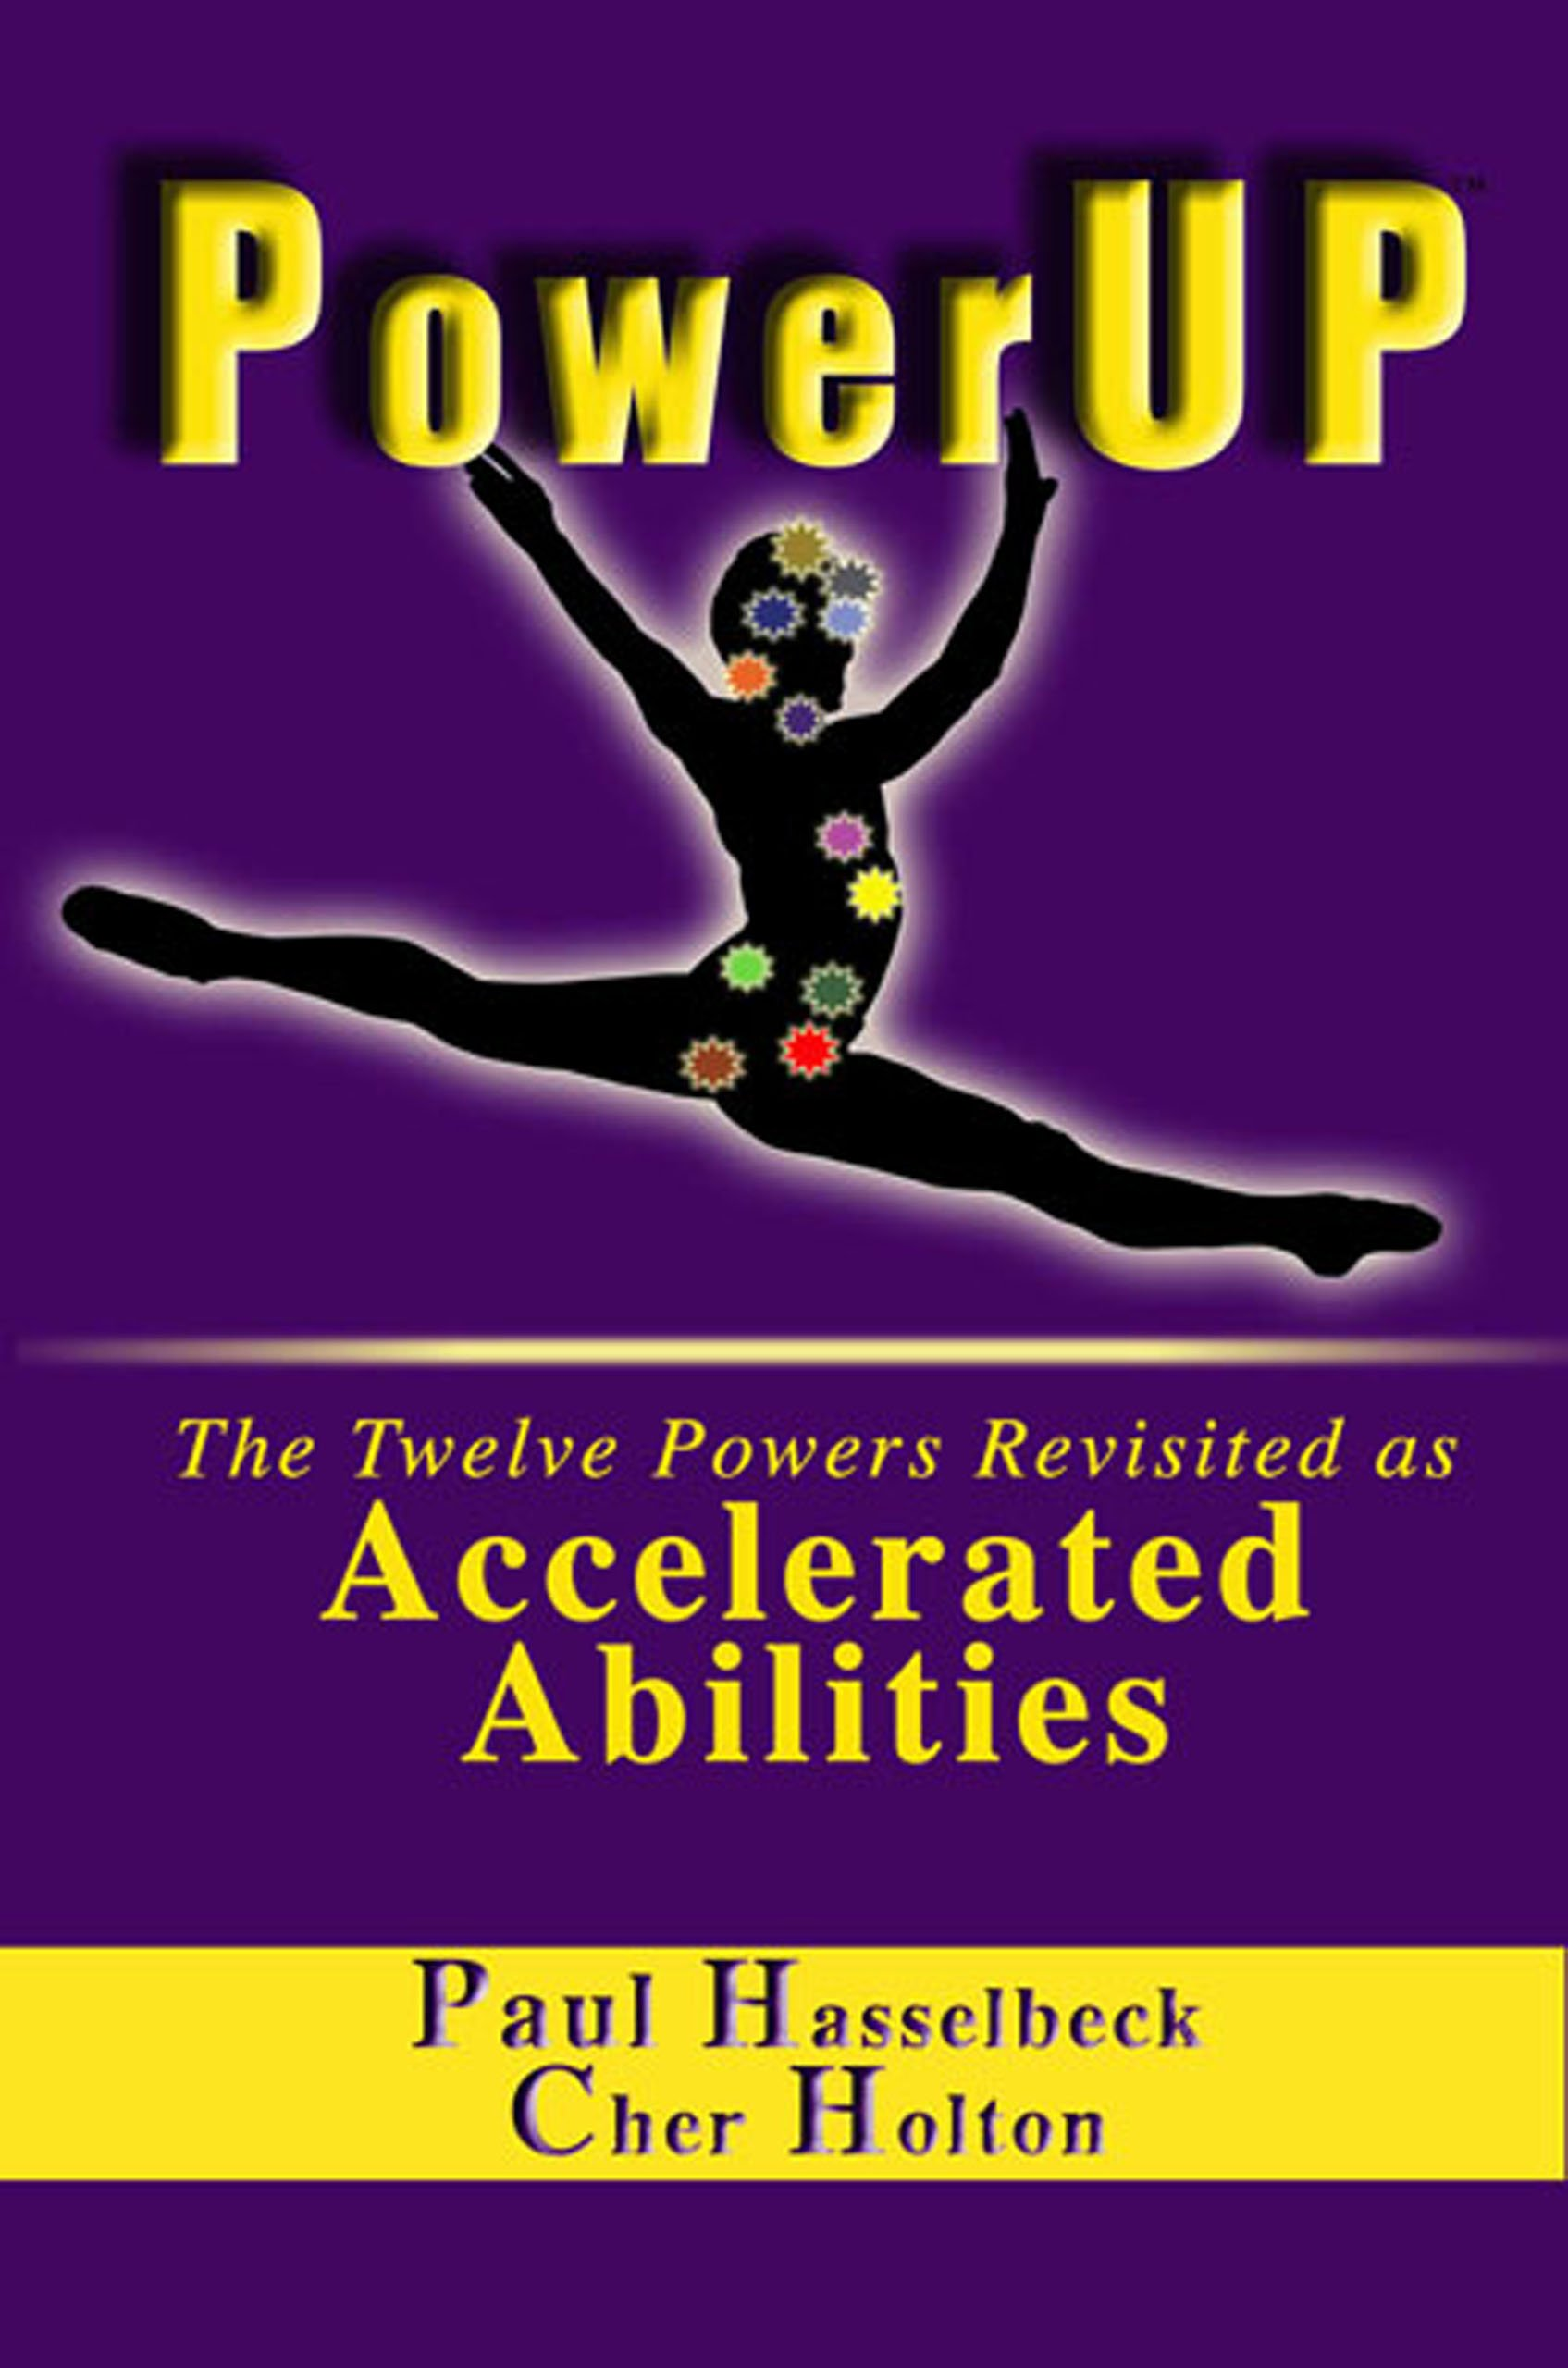 Download PowerUP: The Twelve Powers Revisited as Accelerated Abilities pdf